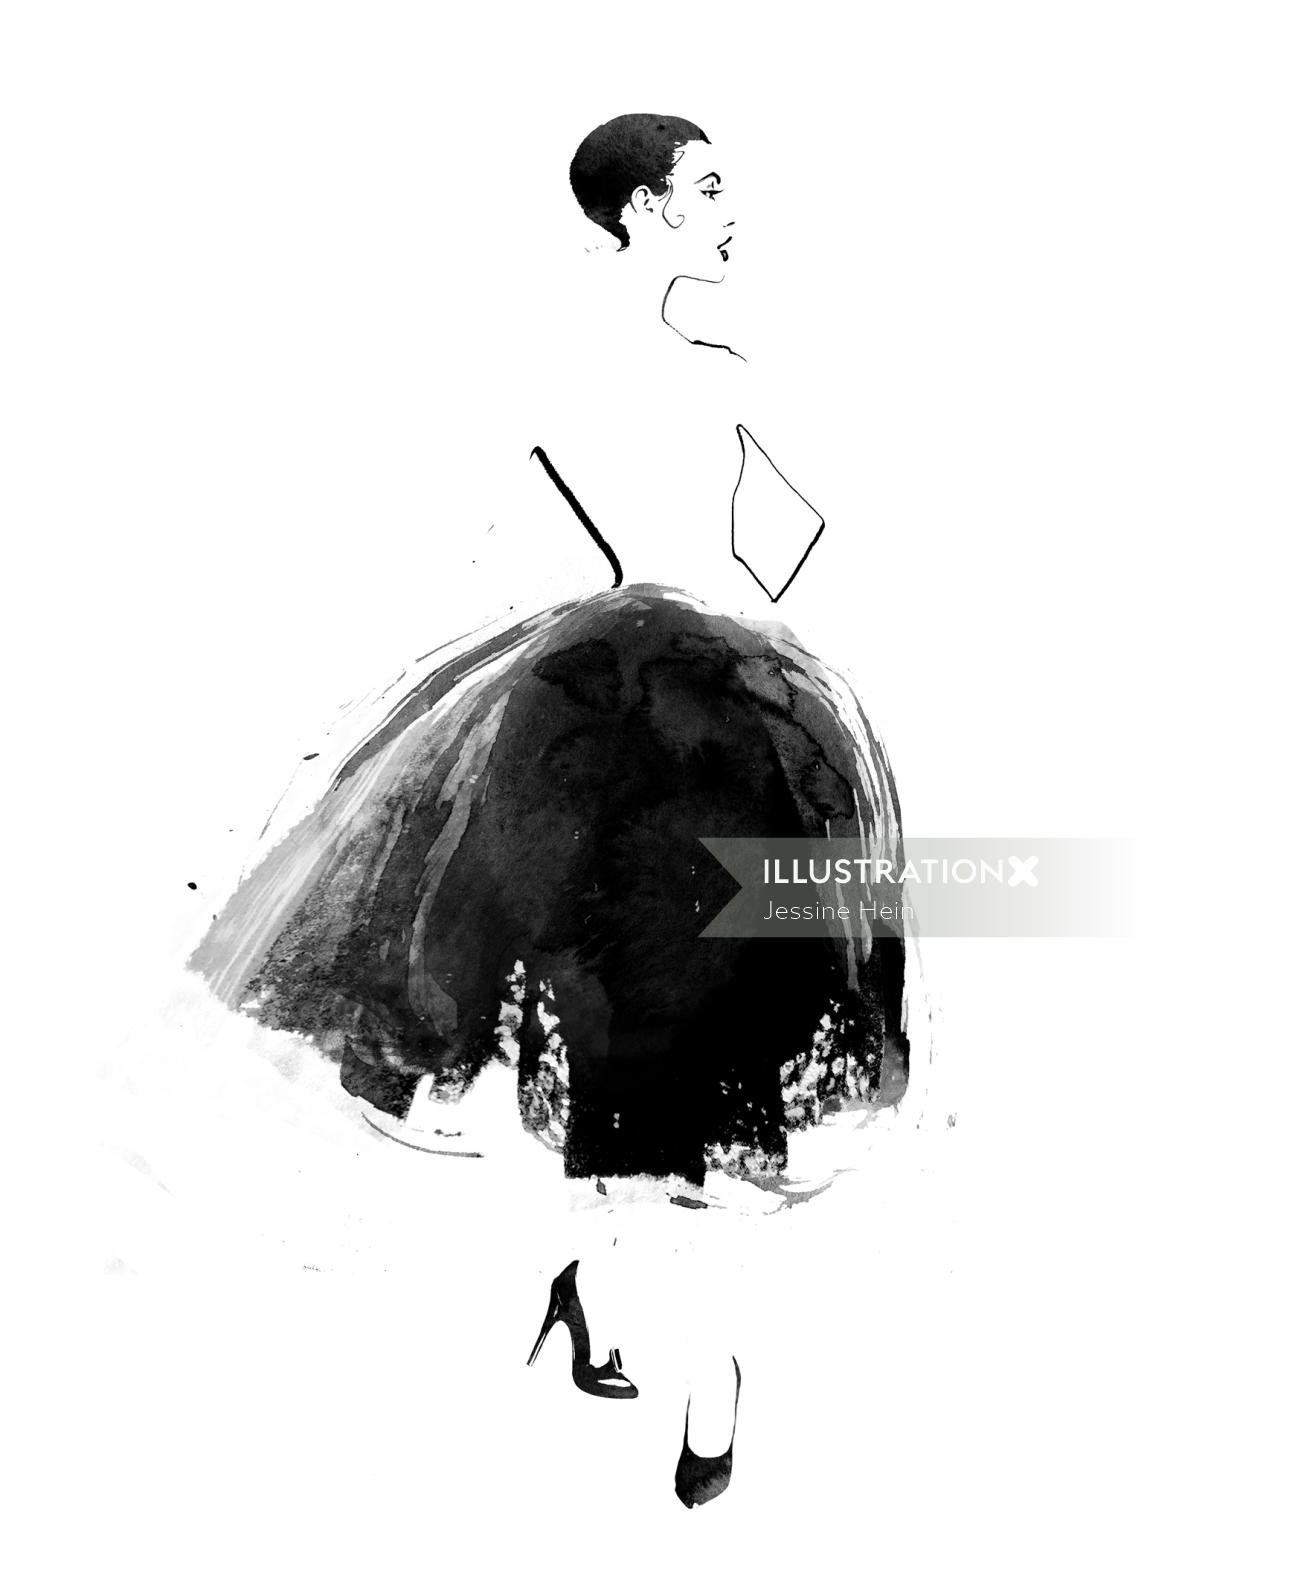 watercolor fashion illustration of a woman with elegant dress